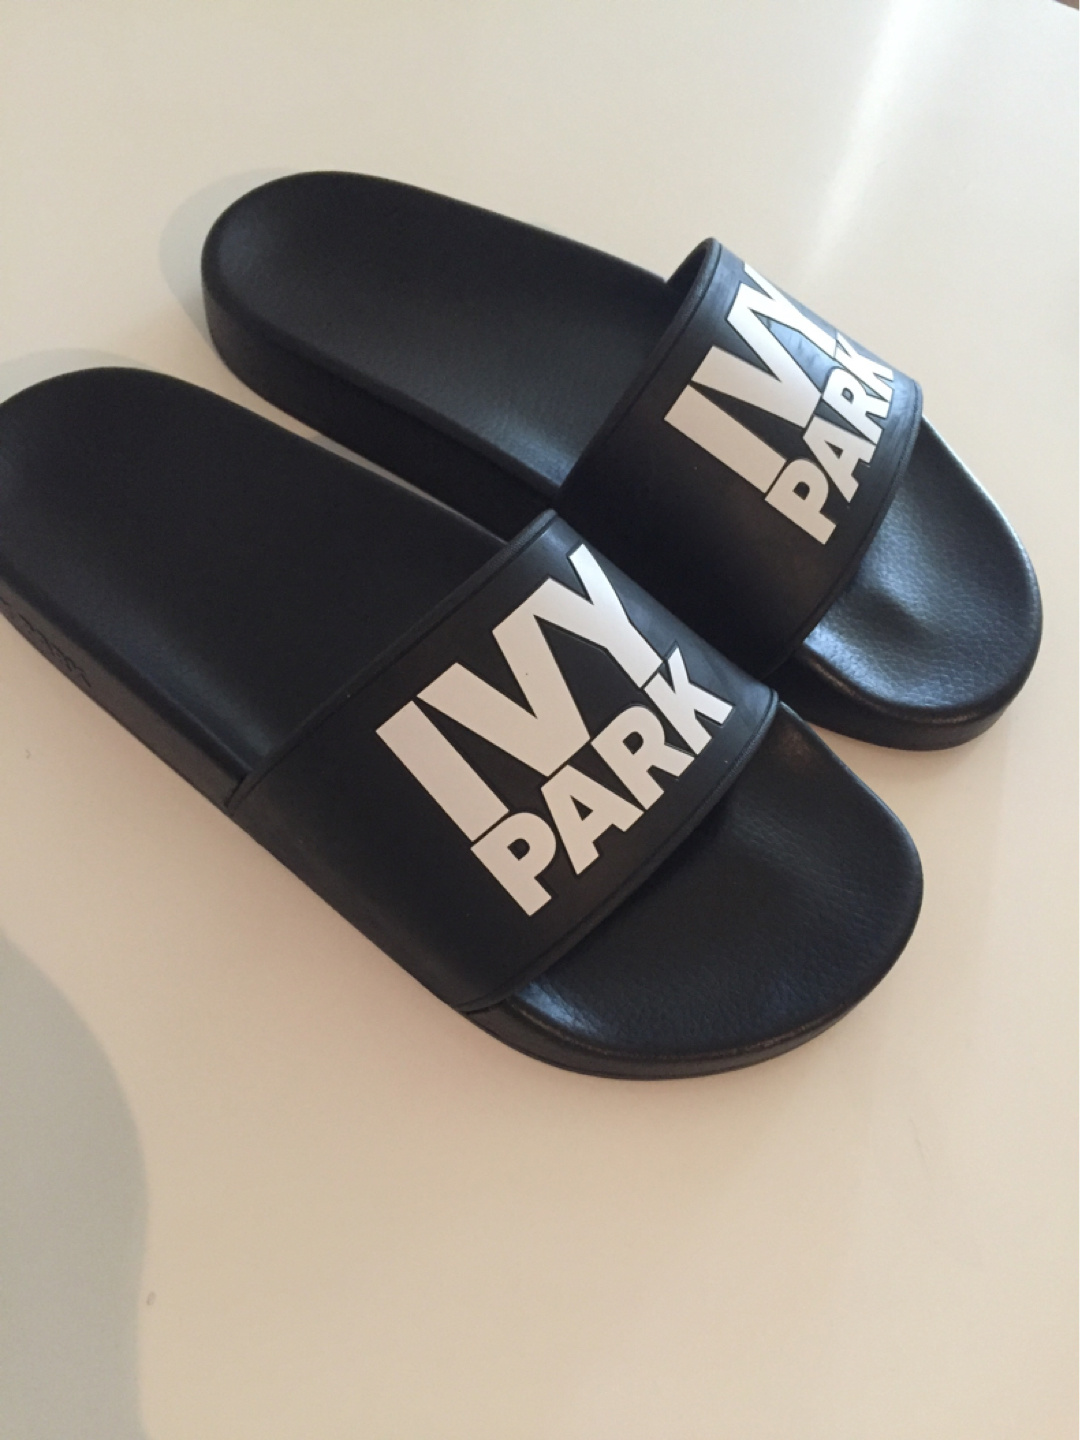 Women's sandals & slippers - IVY PARK photo 2